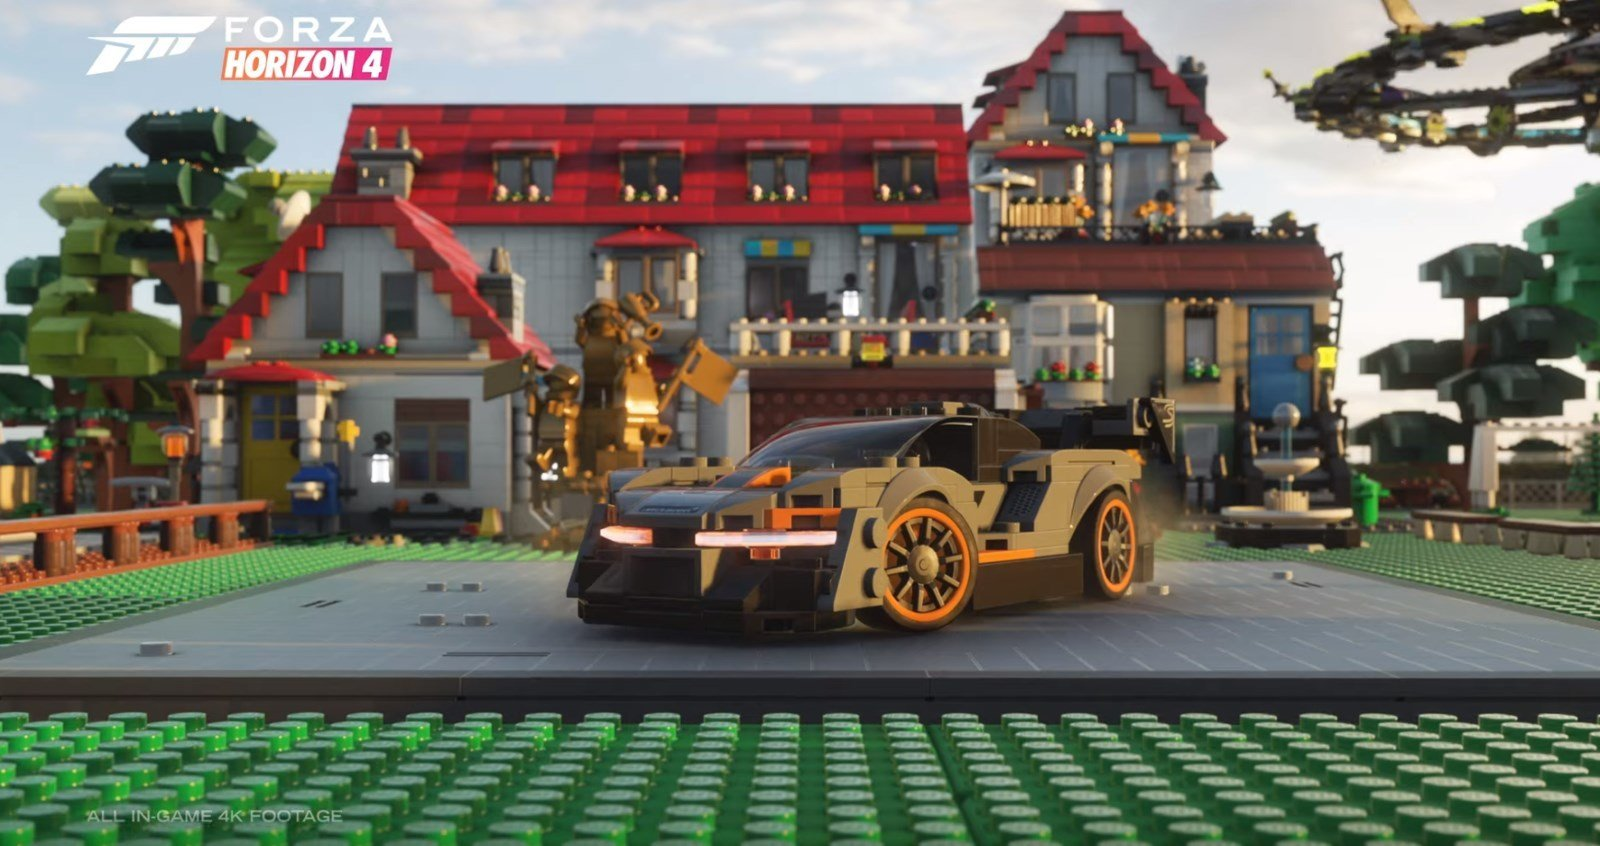 Forza Horizon 4 Introduces A LEGO Expansion Bringing Plastic Brick Racing to The Finish Lines At E3